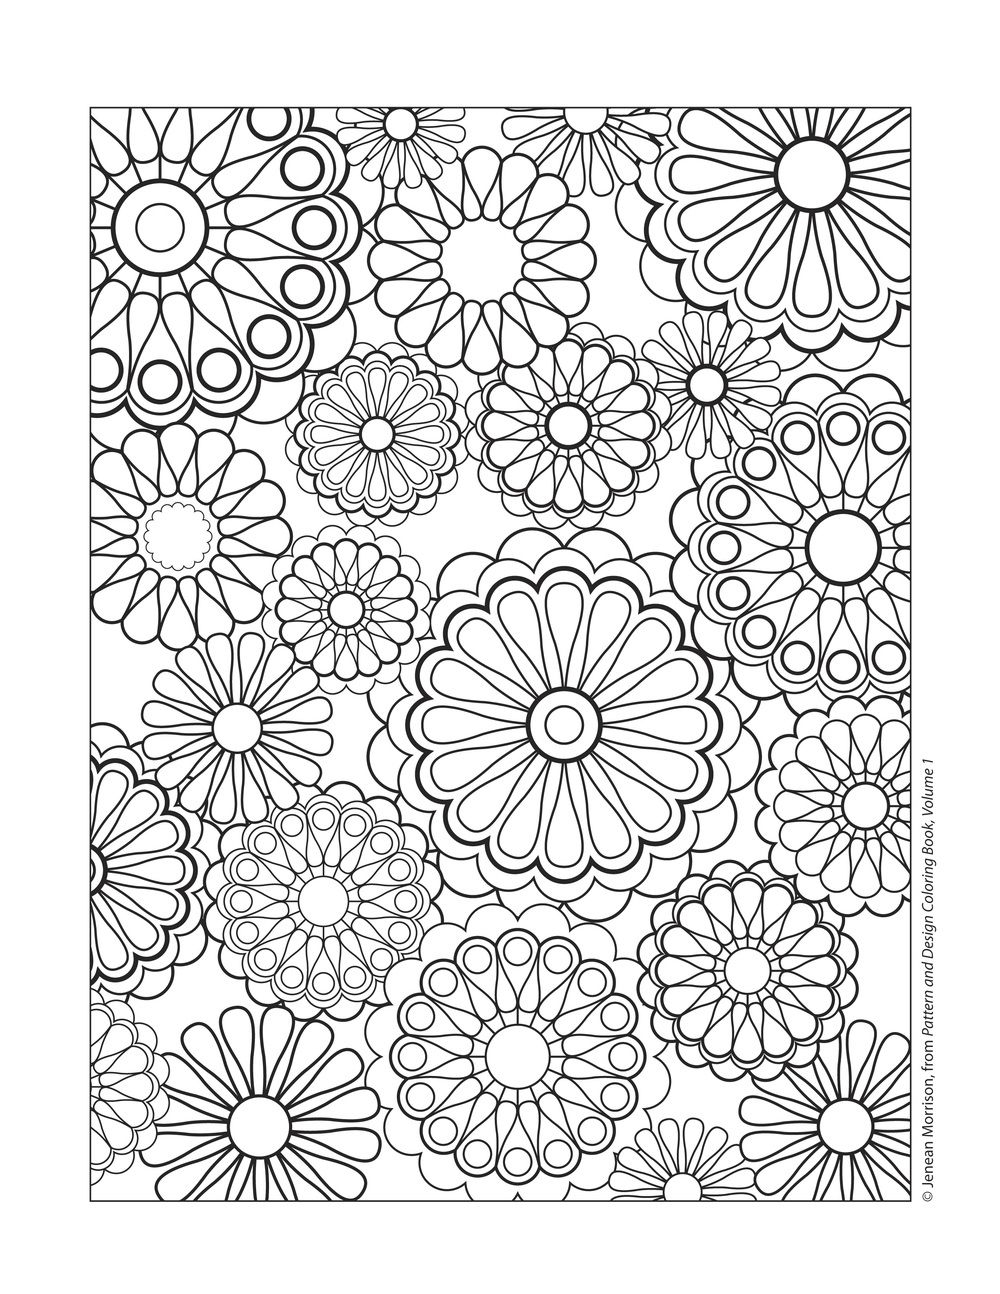 Printable Quilt Patterns Coloring Pages  Printable 12n - Free For Children